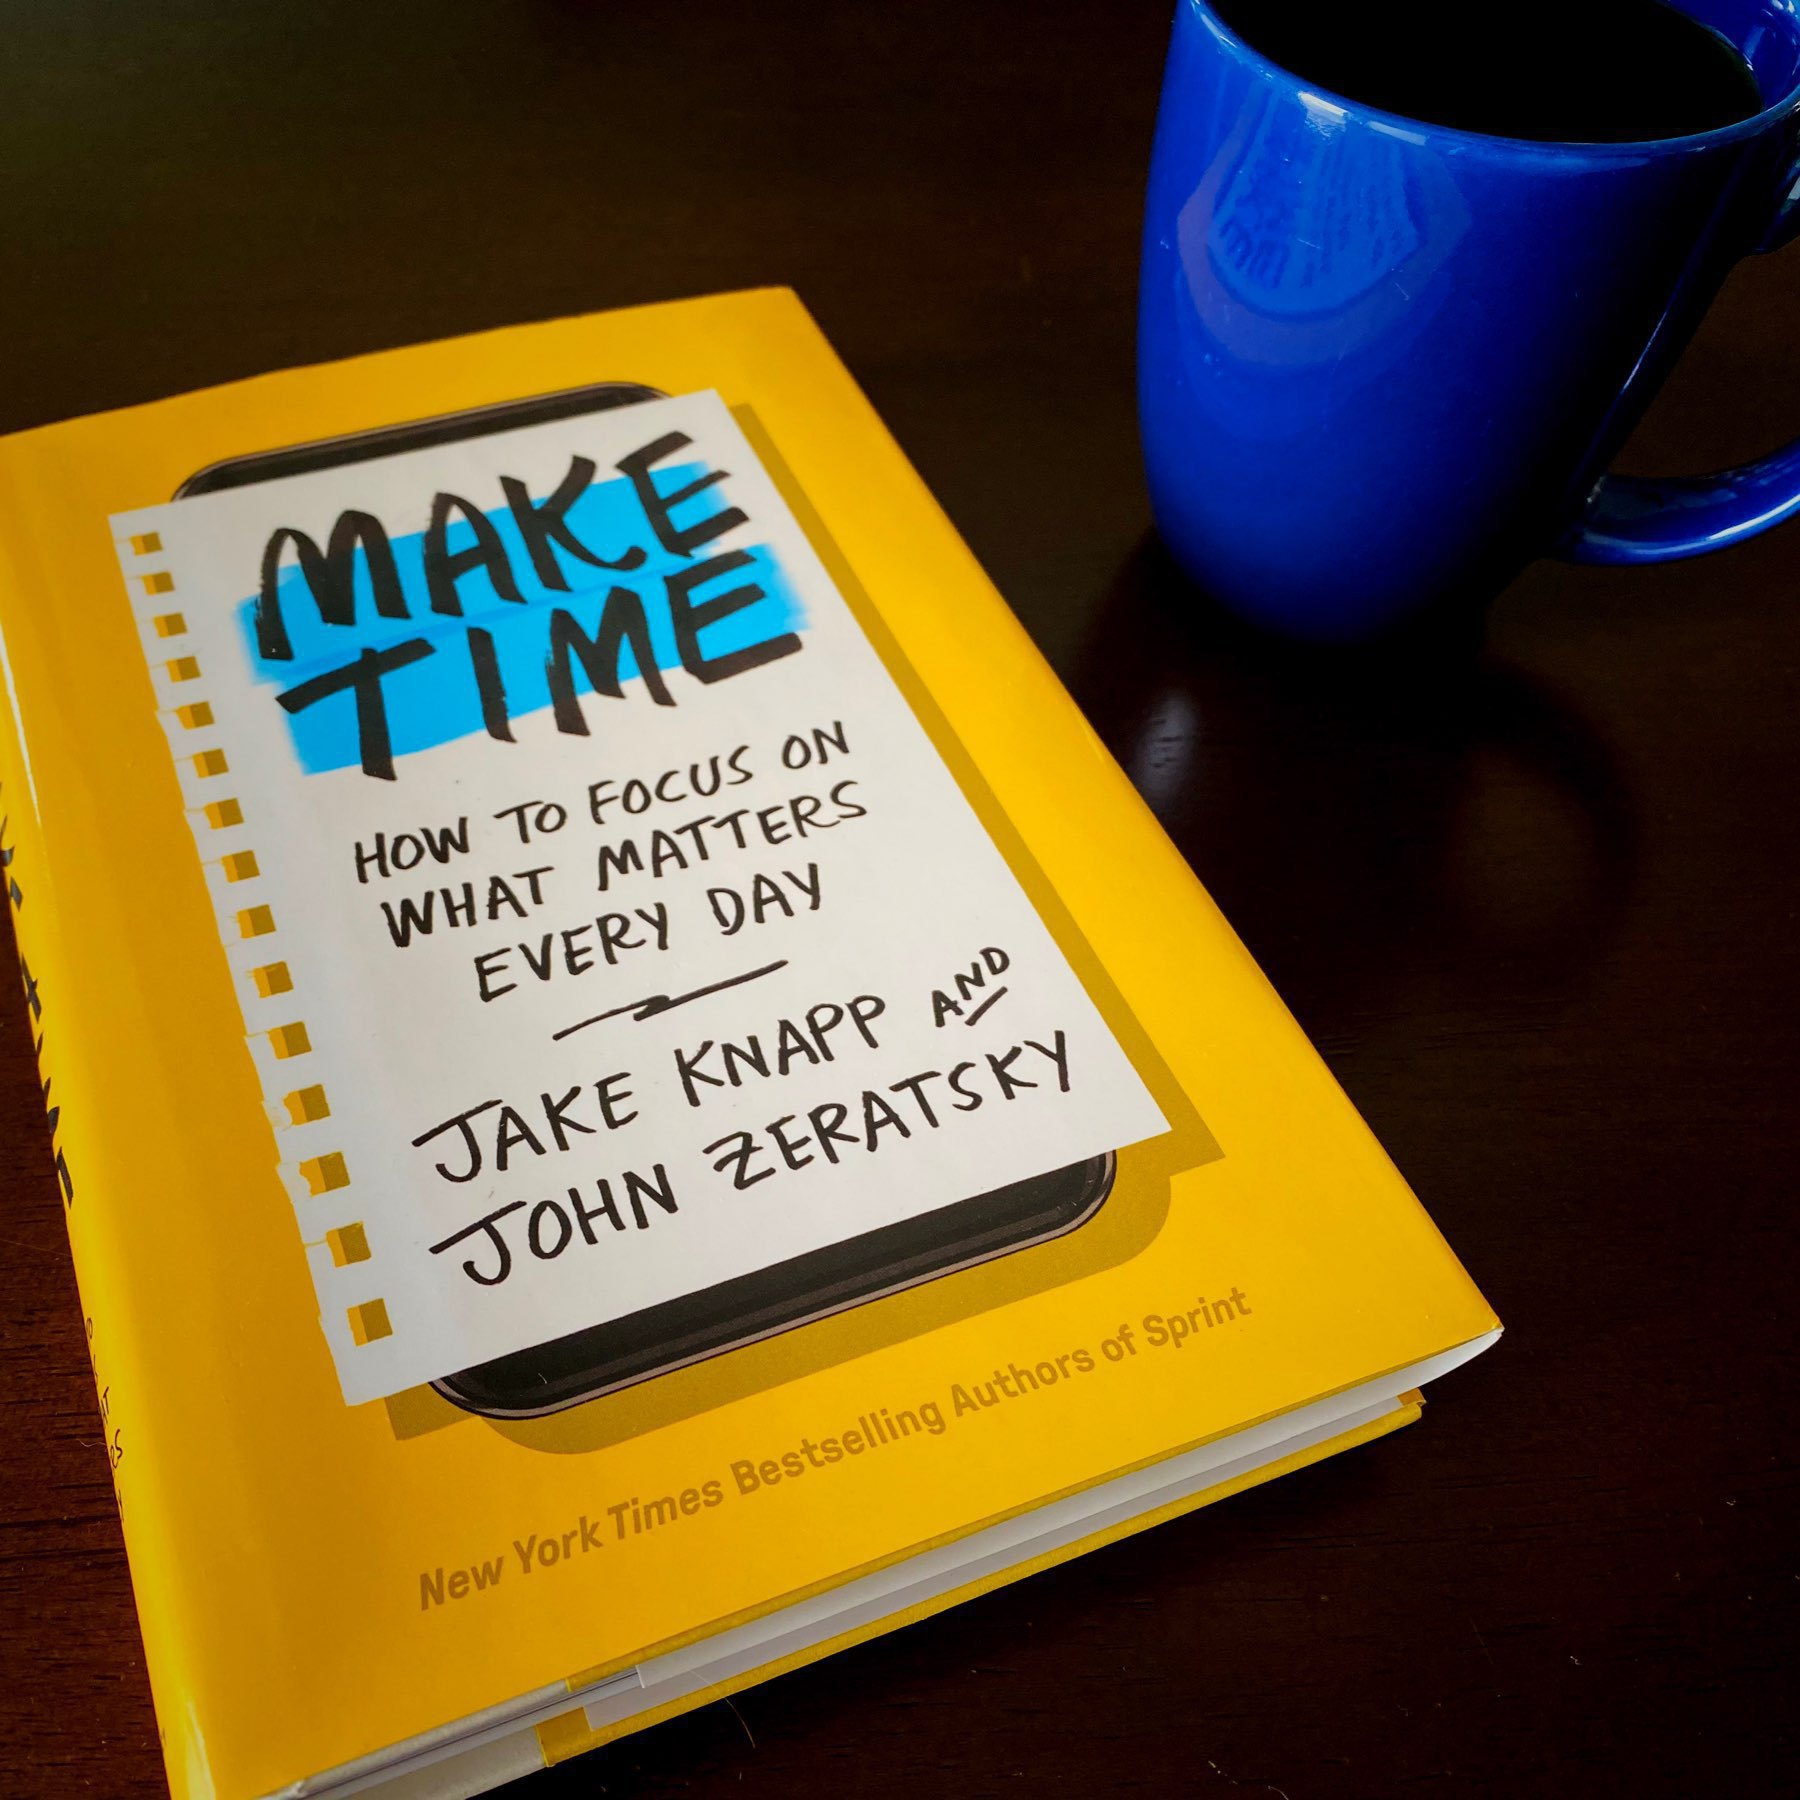 Make Time book sitting on a table next to a coffee mug